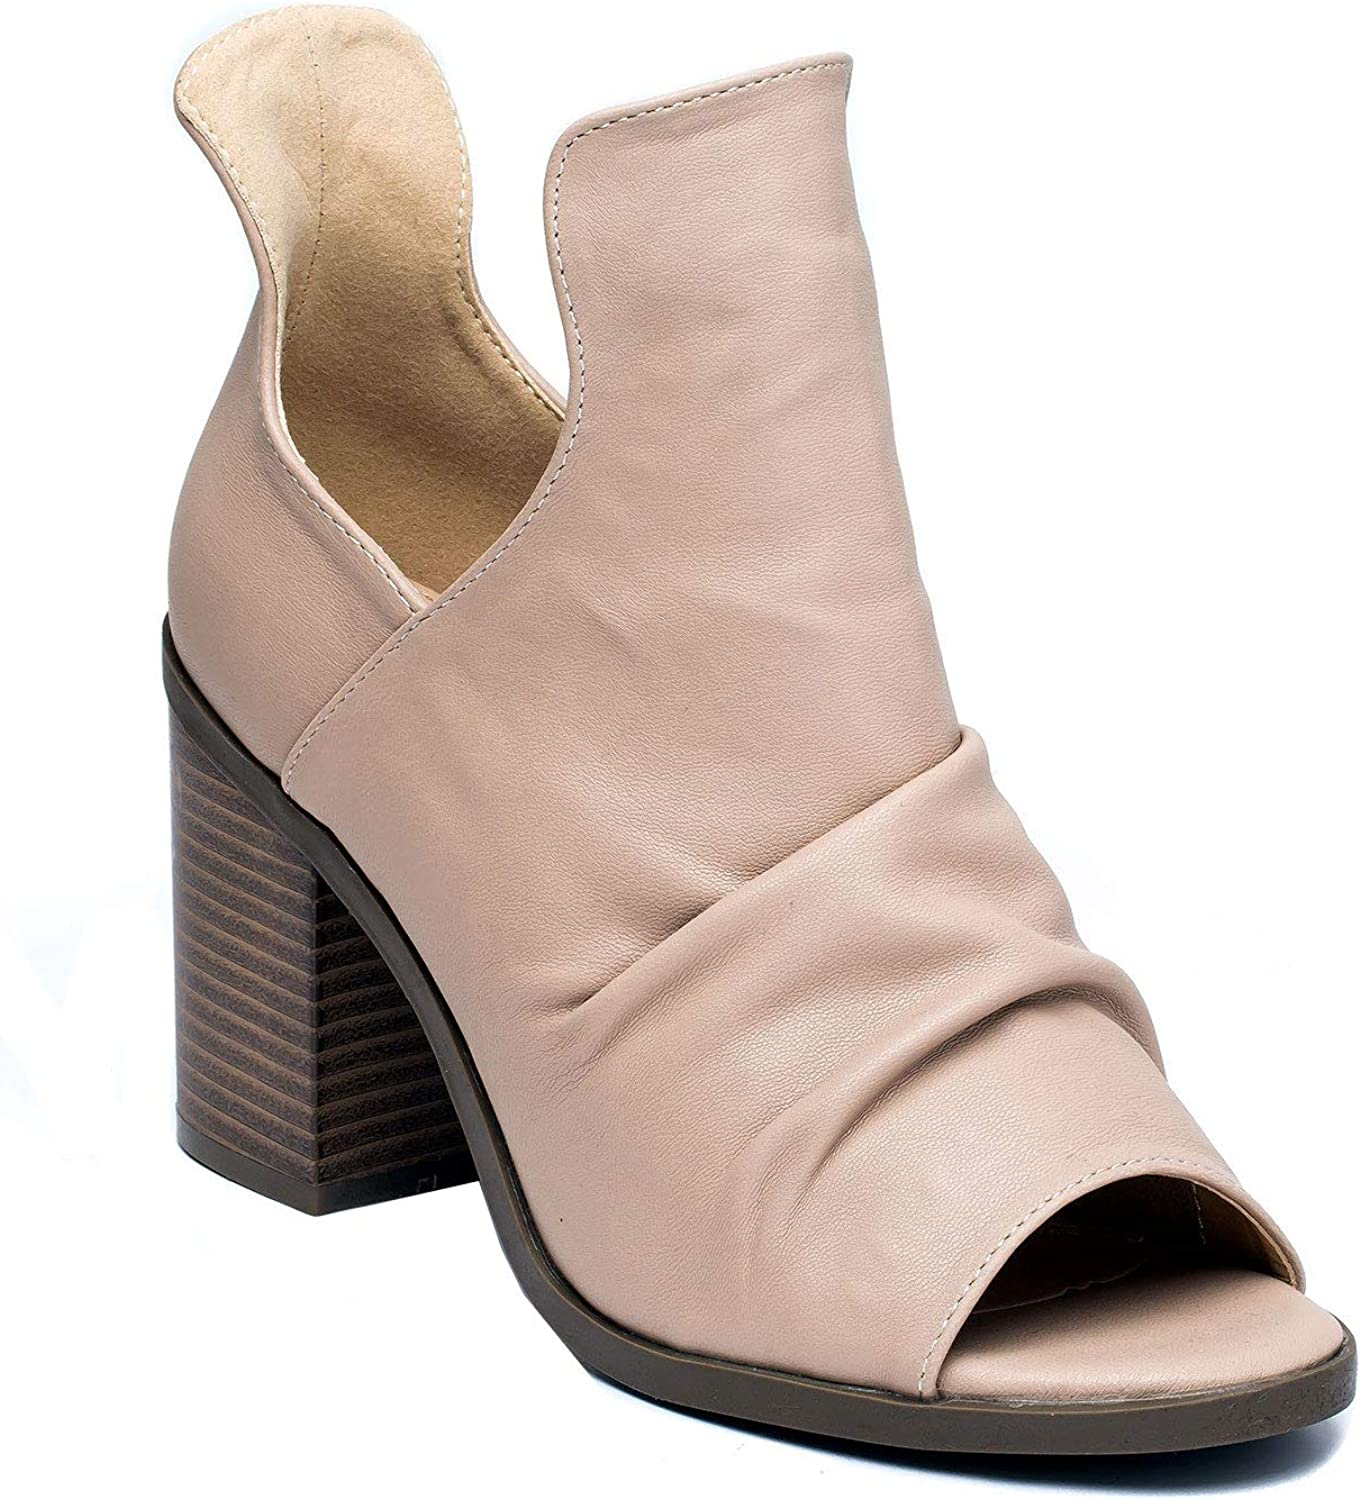 Gc shoes Women's Susana Cut Out Heeled Sandal - Peep Toe Suede Pull On Sandal